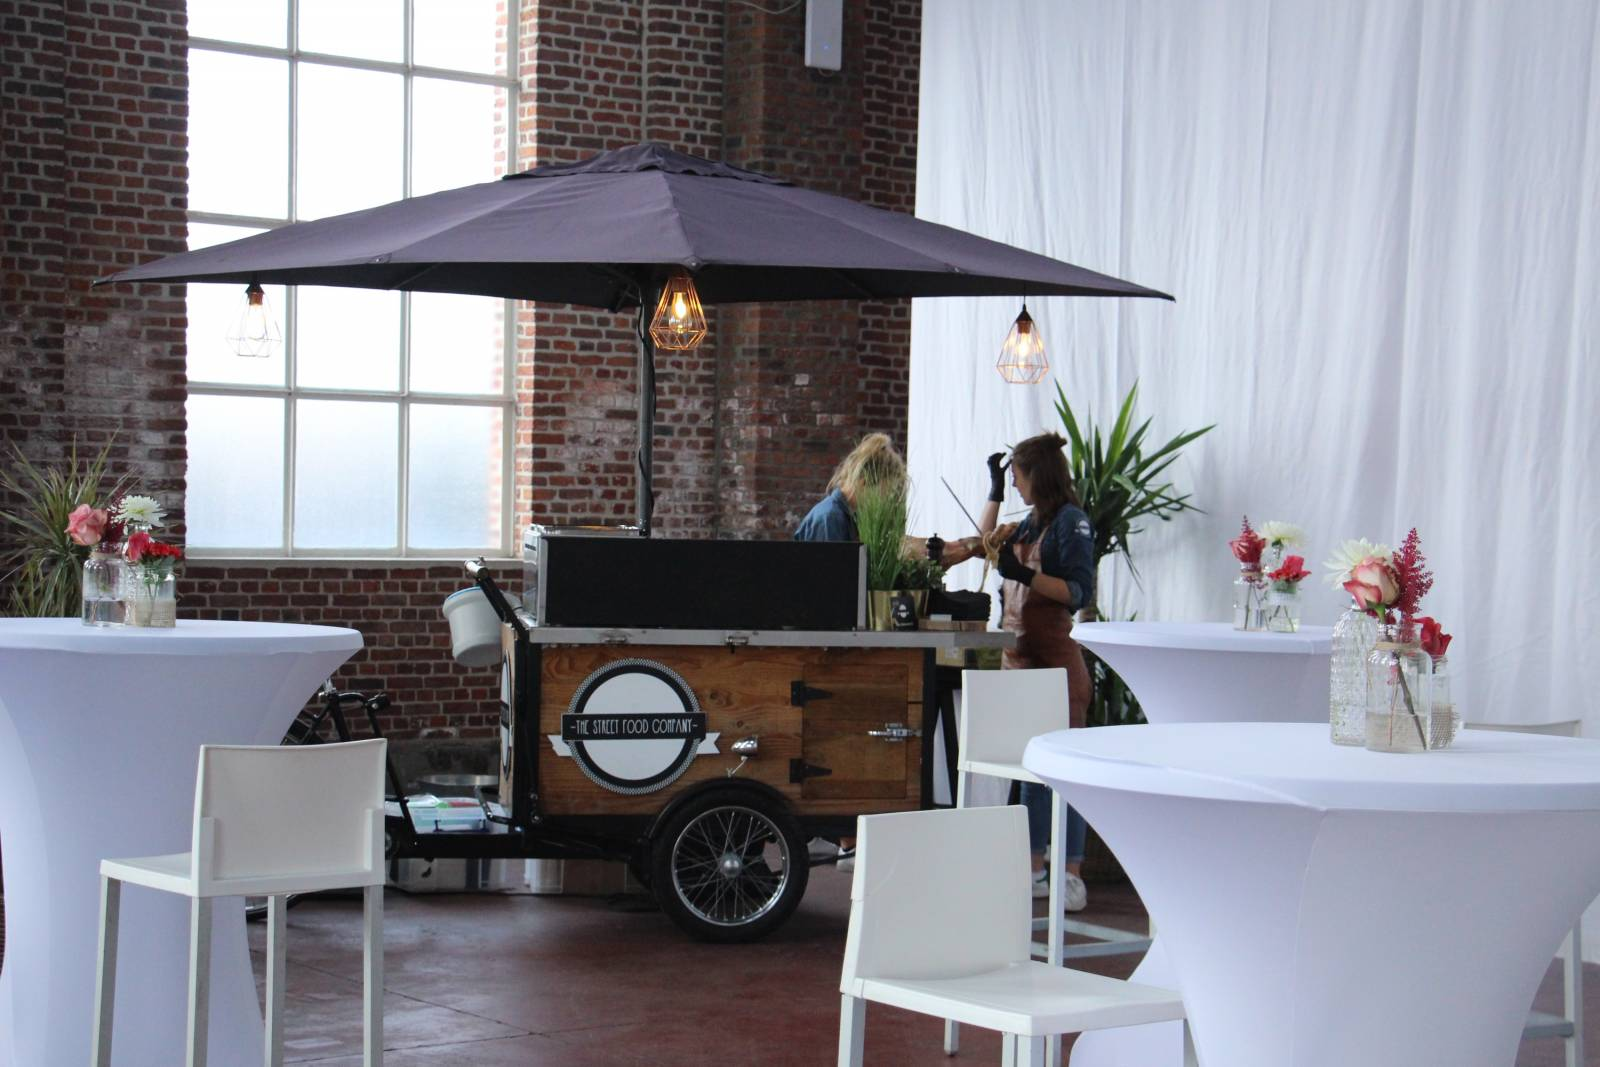 Hangar 43 - Feestzaal Oost-Vlaanderen - Industrieel - House of Weddings - 31